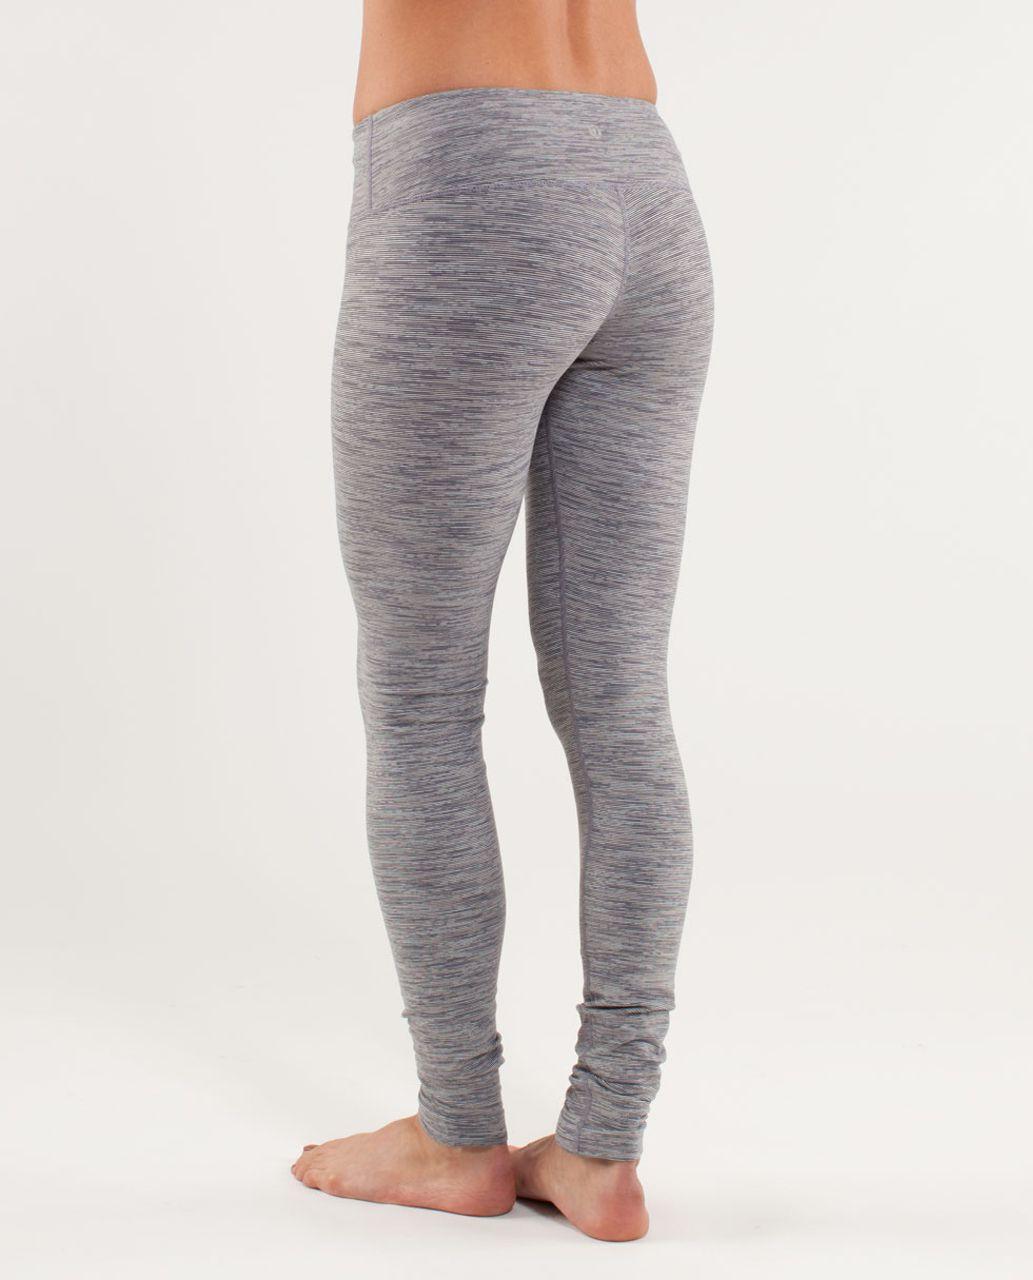 Lululemon Wunder Under Pant - Wee Are From Space Coal Fossil